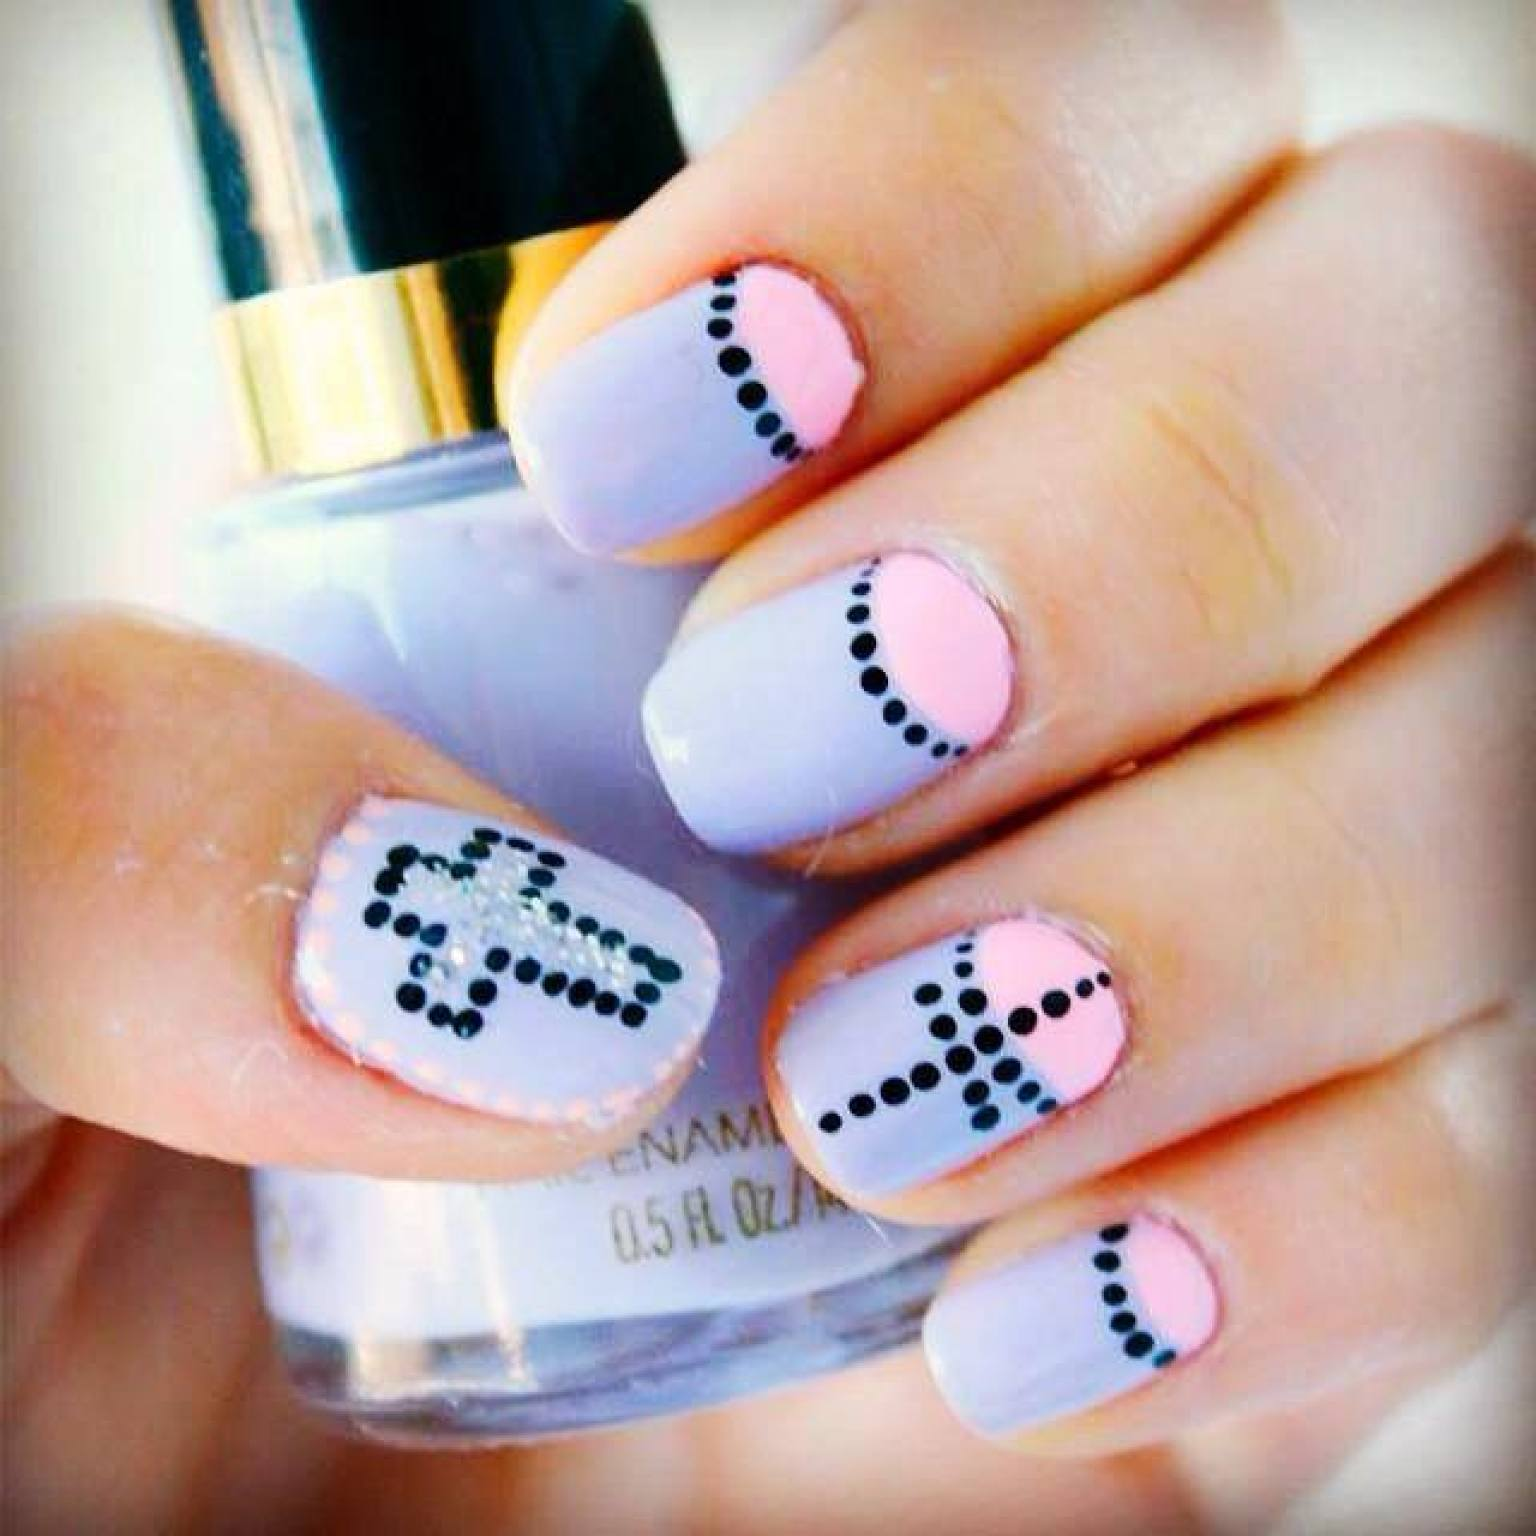 Mobile Nail Spa Los Angeles: Best Nail Salons In LA By 'Hood: Eastside, West Hollywood